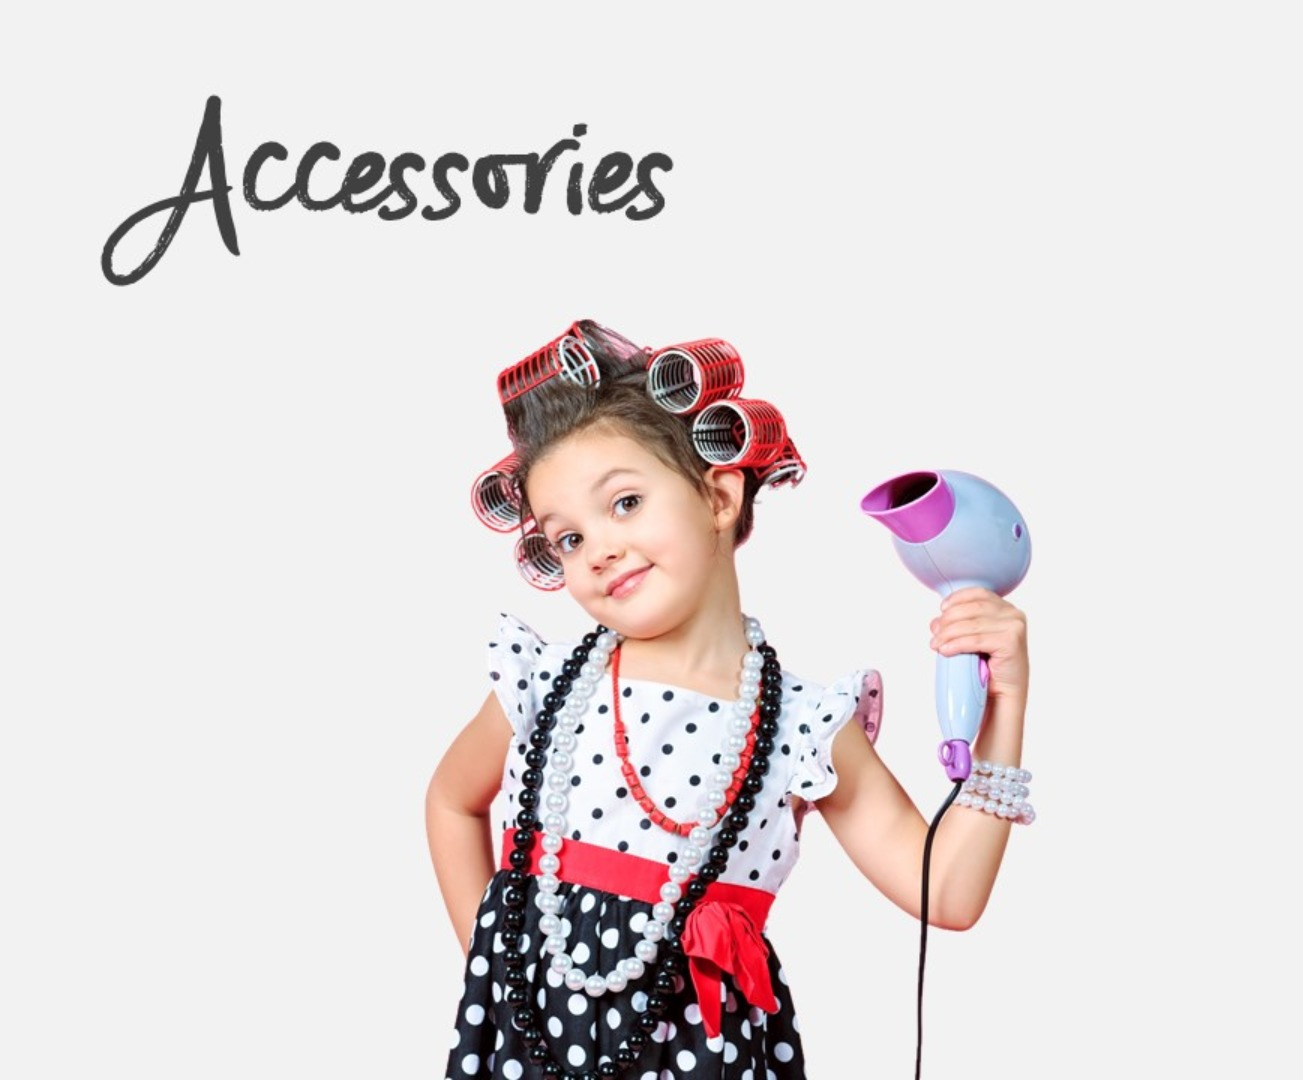 Accessories for children